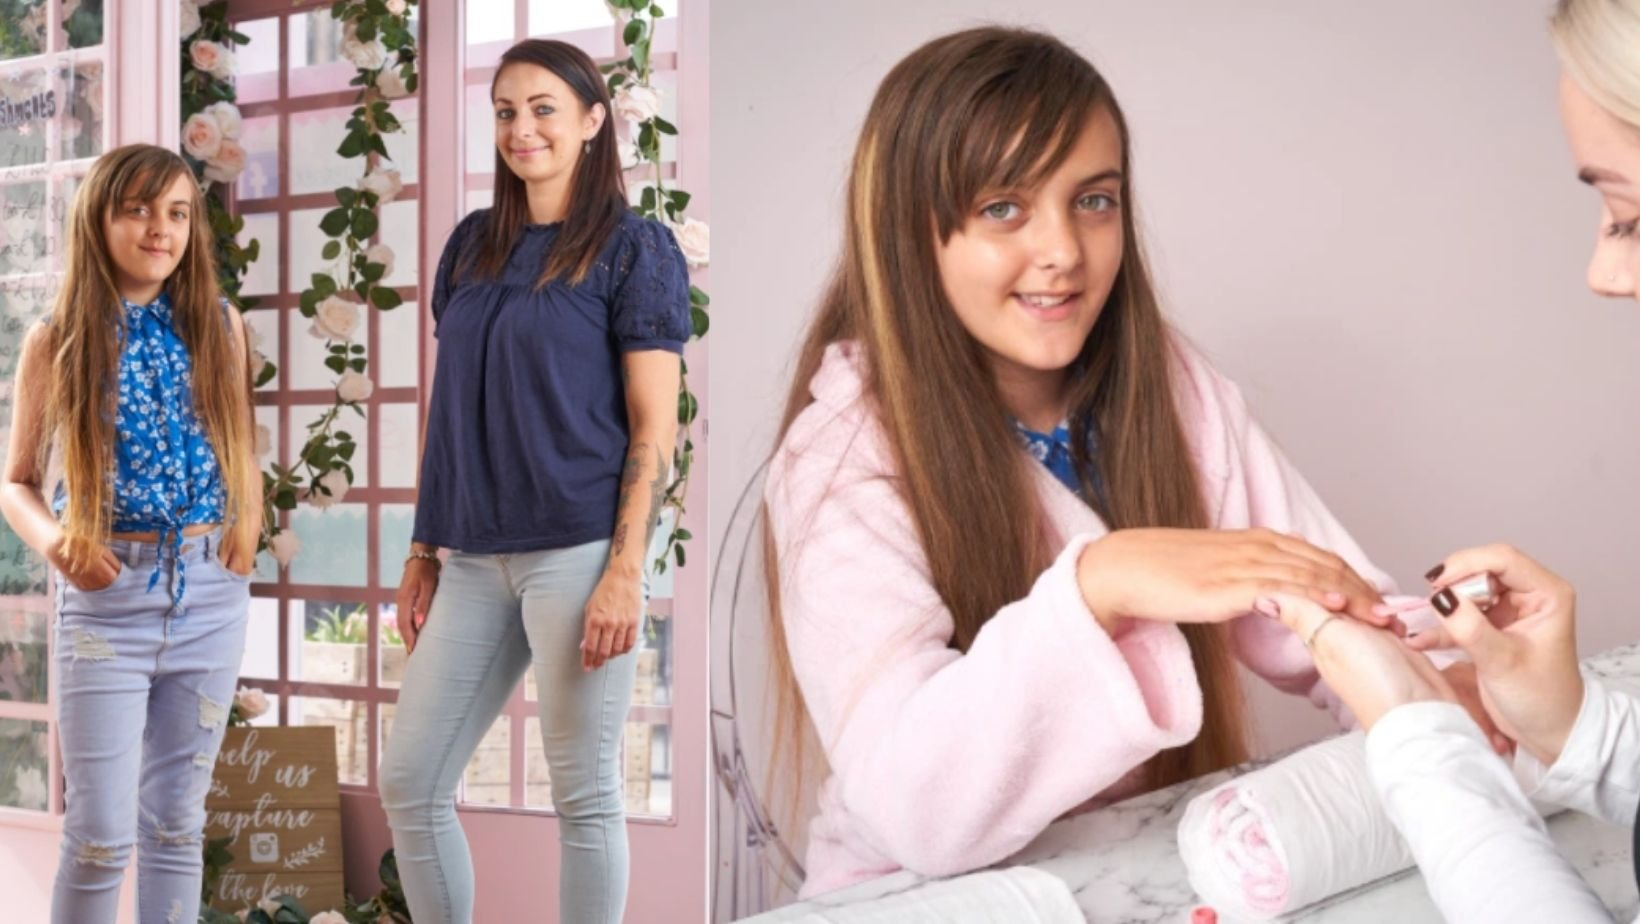 small joys thumbnail 13.jpg?resize=412,232 - Mother Is Spending Hundreds Of Money For 12-Y.O Daughter's Monthly Spa Visits, Arguing That Teaching Kids About Self Care Is VERY Important